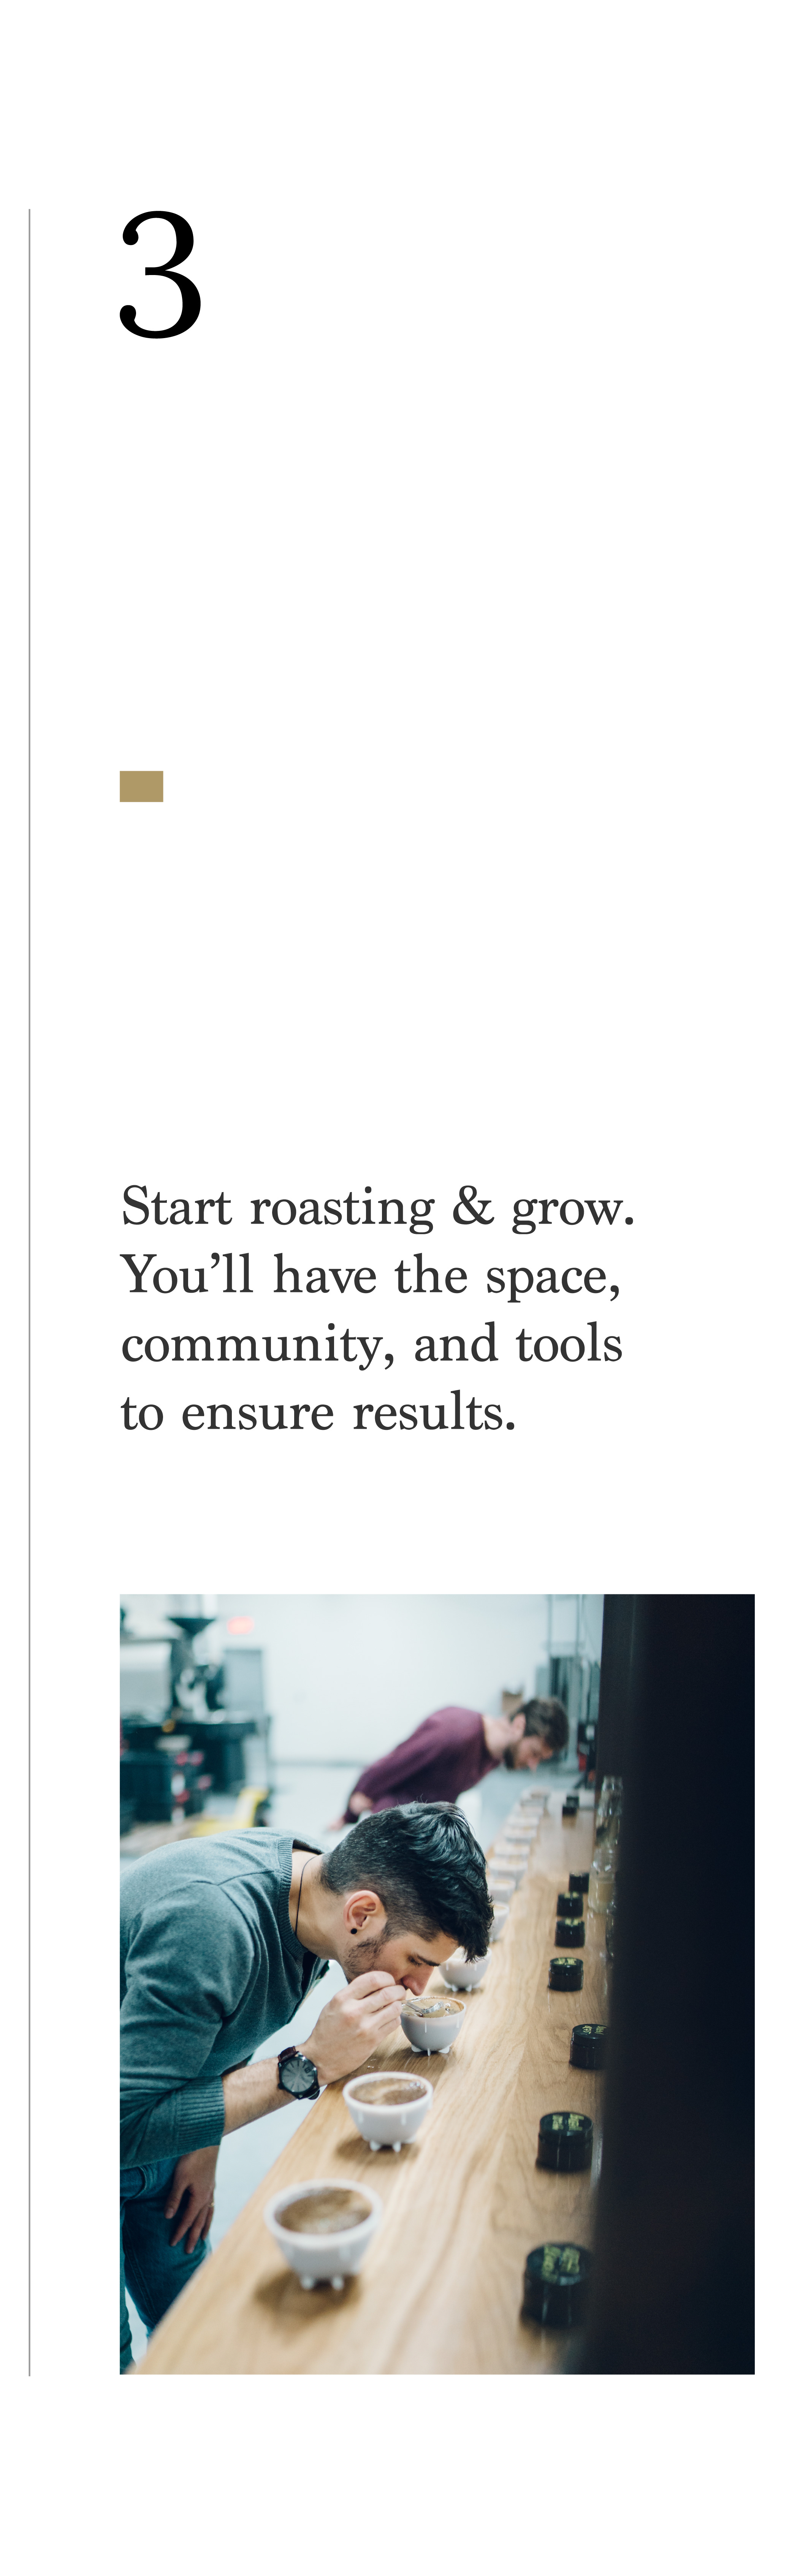 Step 3- Start roasting and grow your business. You'll have the space, community, and tools to ensure results.